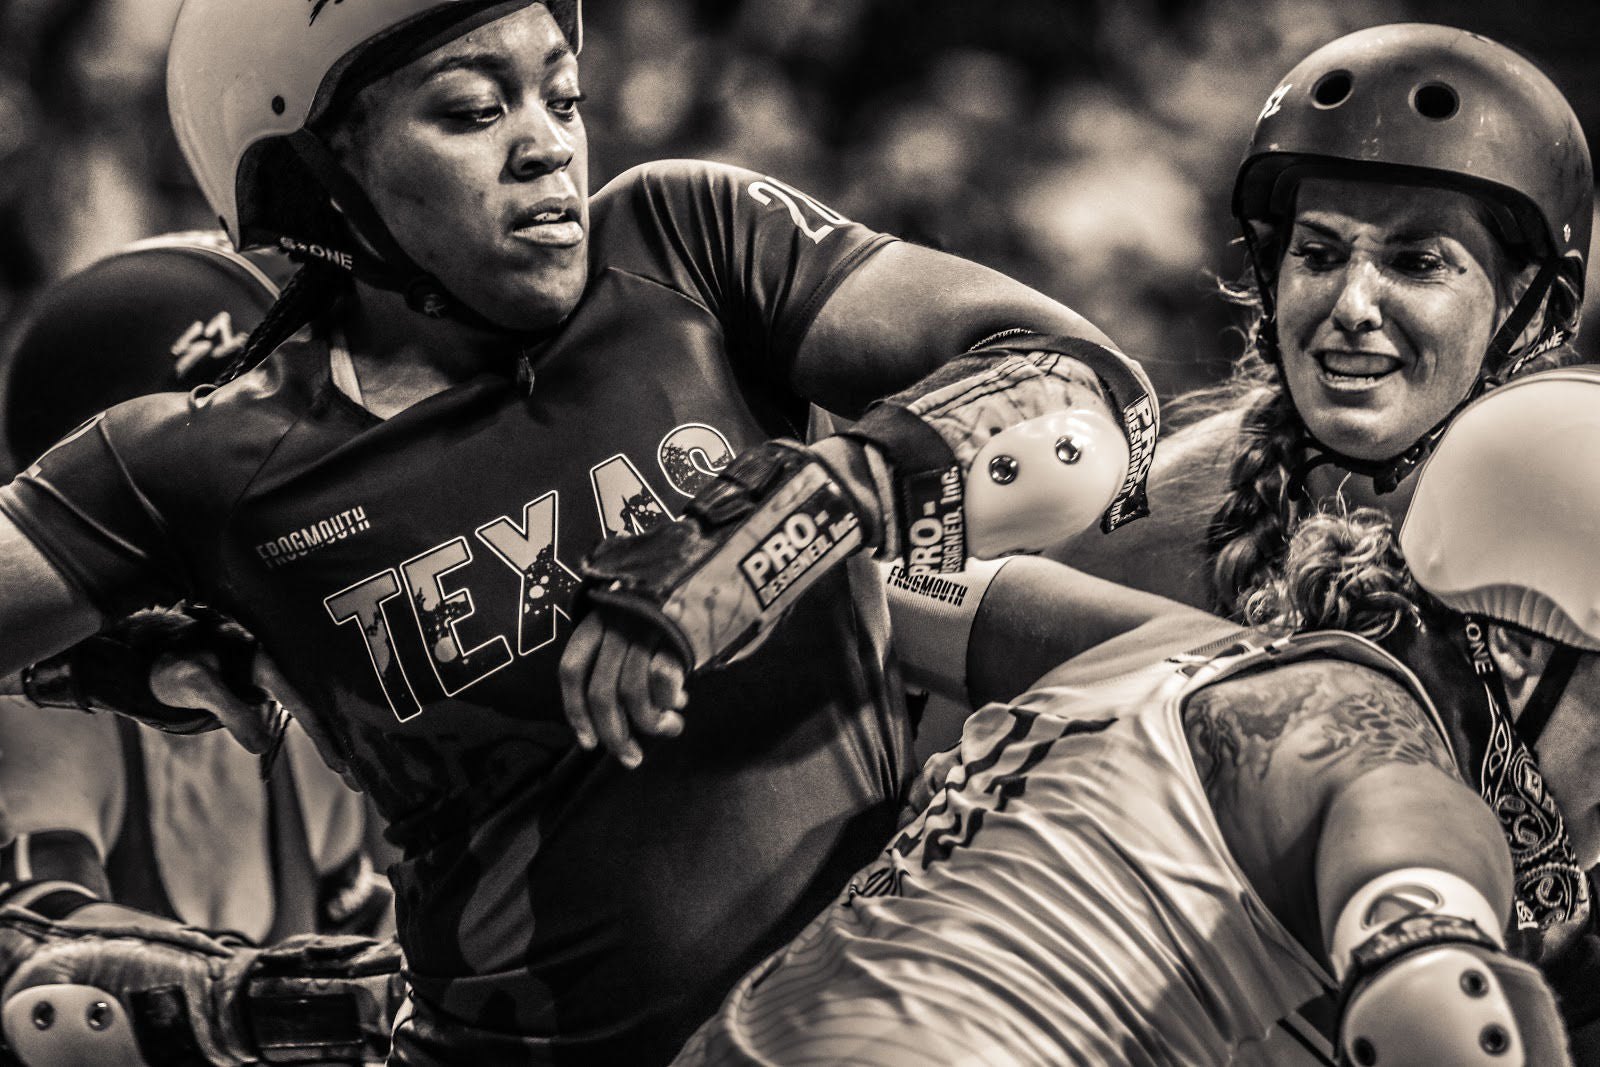 Texas Rollergirls skater Freight Train amid a pack – a moment caught by Michele J Hale that she hopes will remind skaters of their feelings during the game or in that moment. ©Michele J Hale